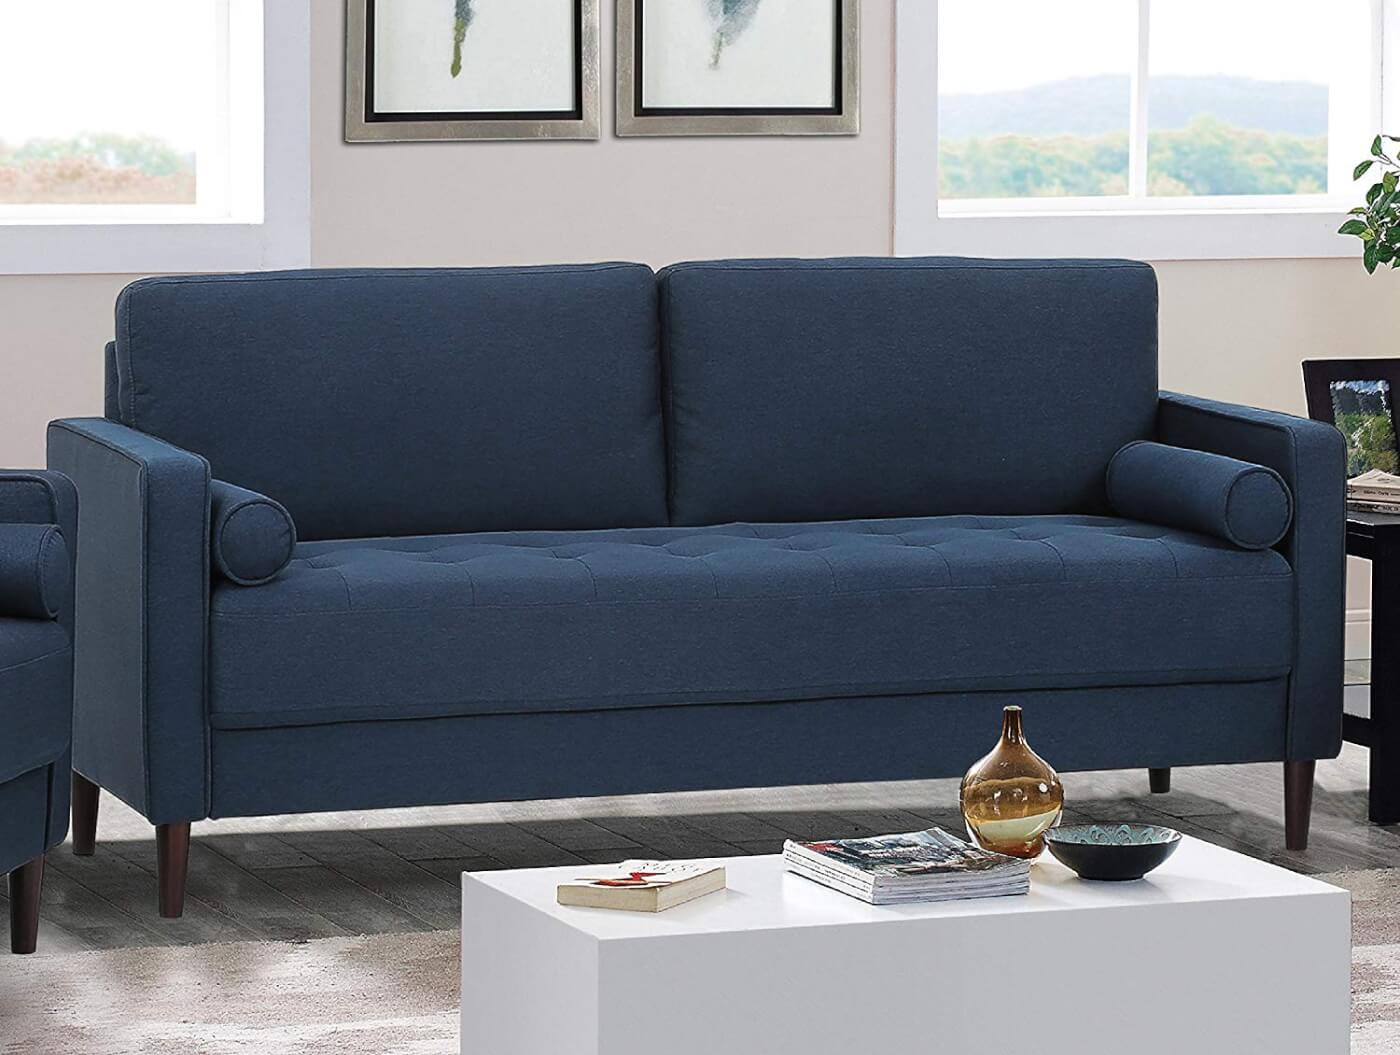 Couch Sofa Stylish And Cozy Vegan Sofas For Every Price Point Peta